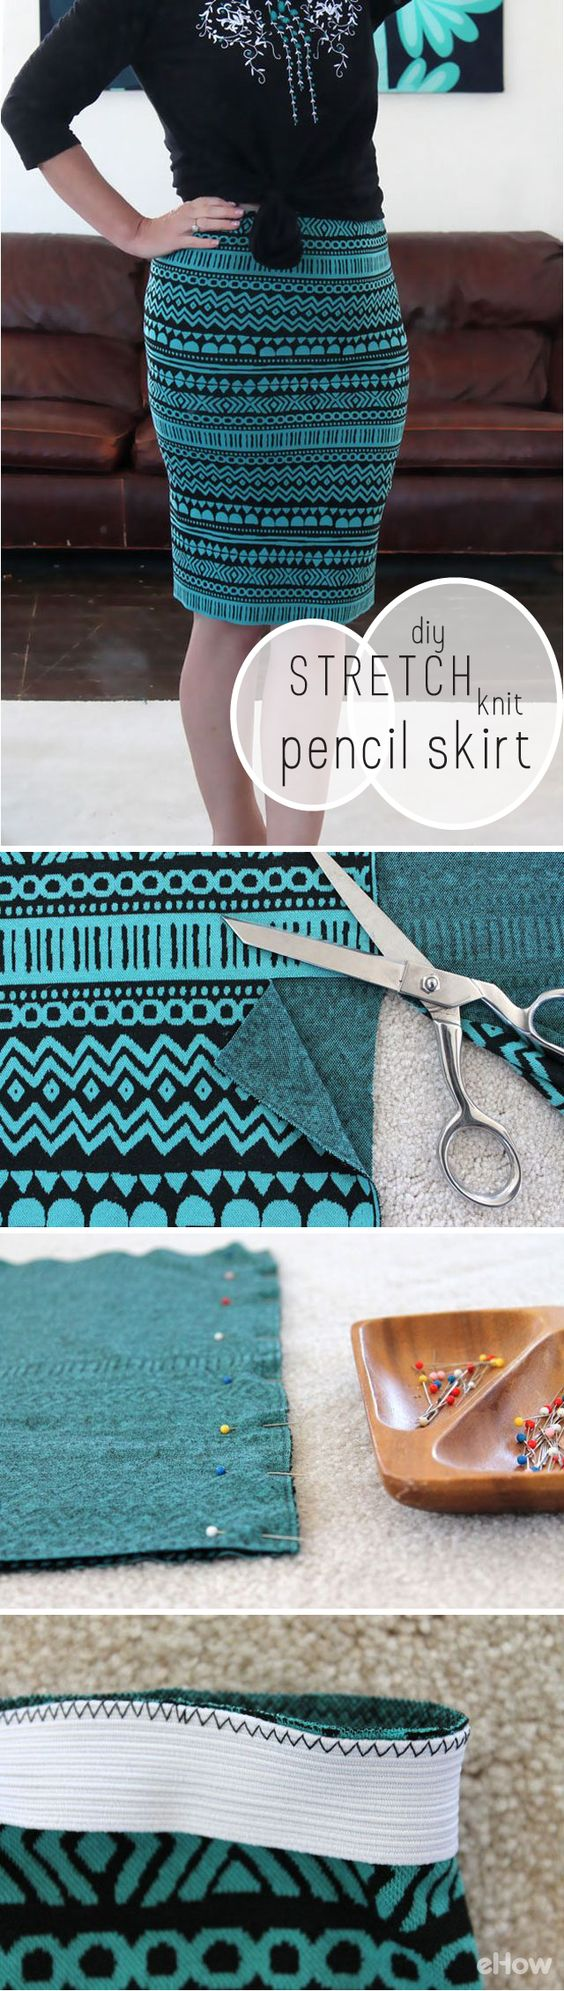 DIY Stretch Knit Pencil Skirt.